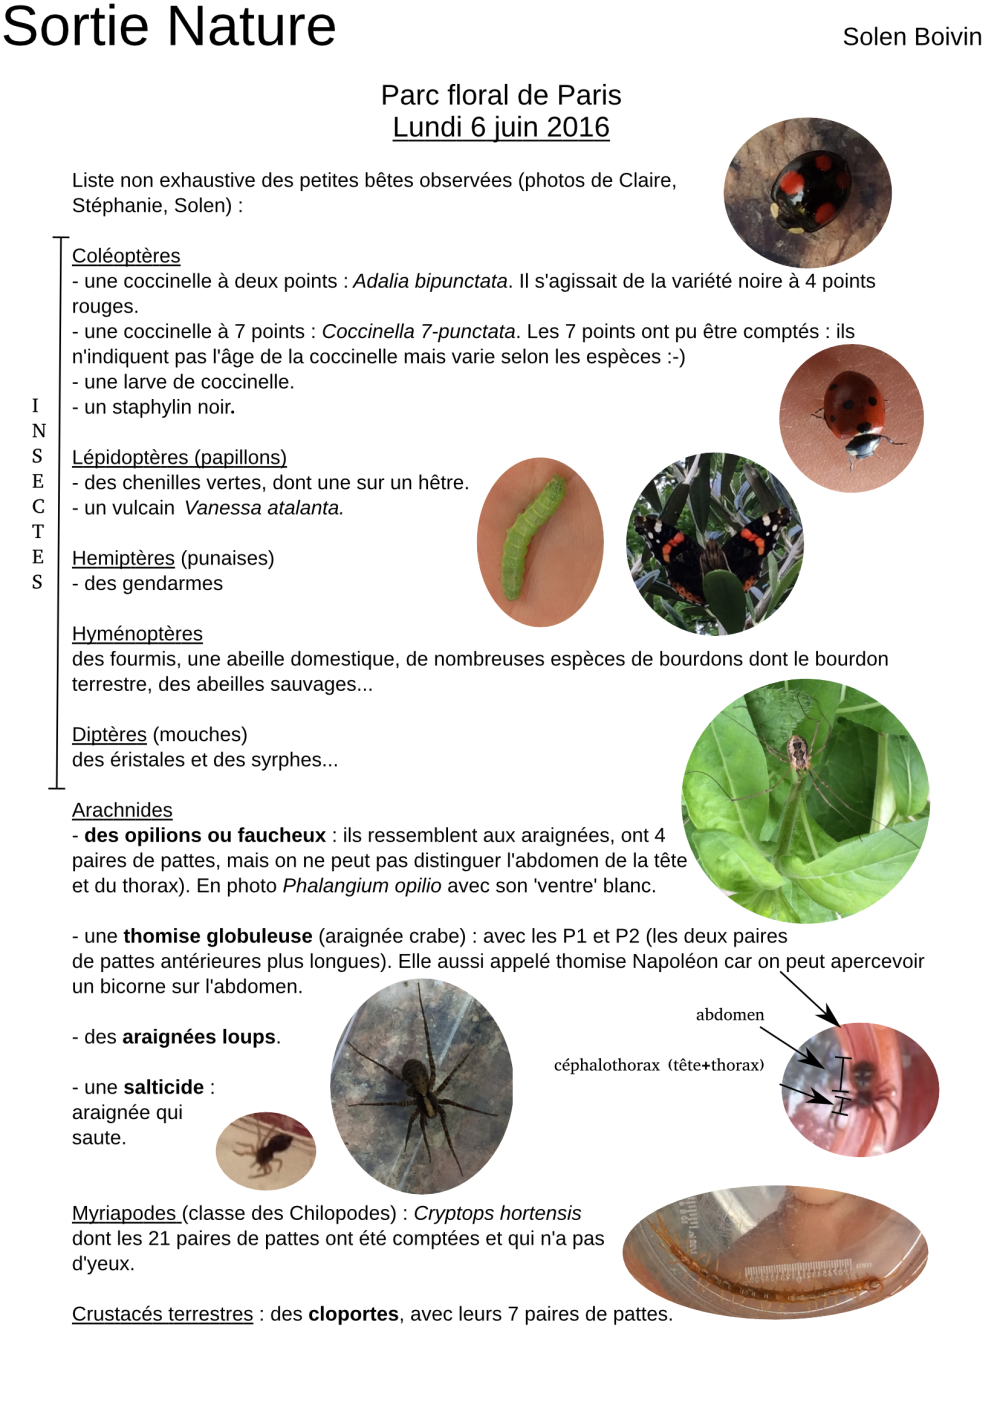 2016-06-06-sortie-nature-page001